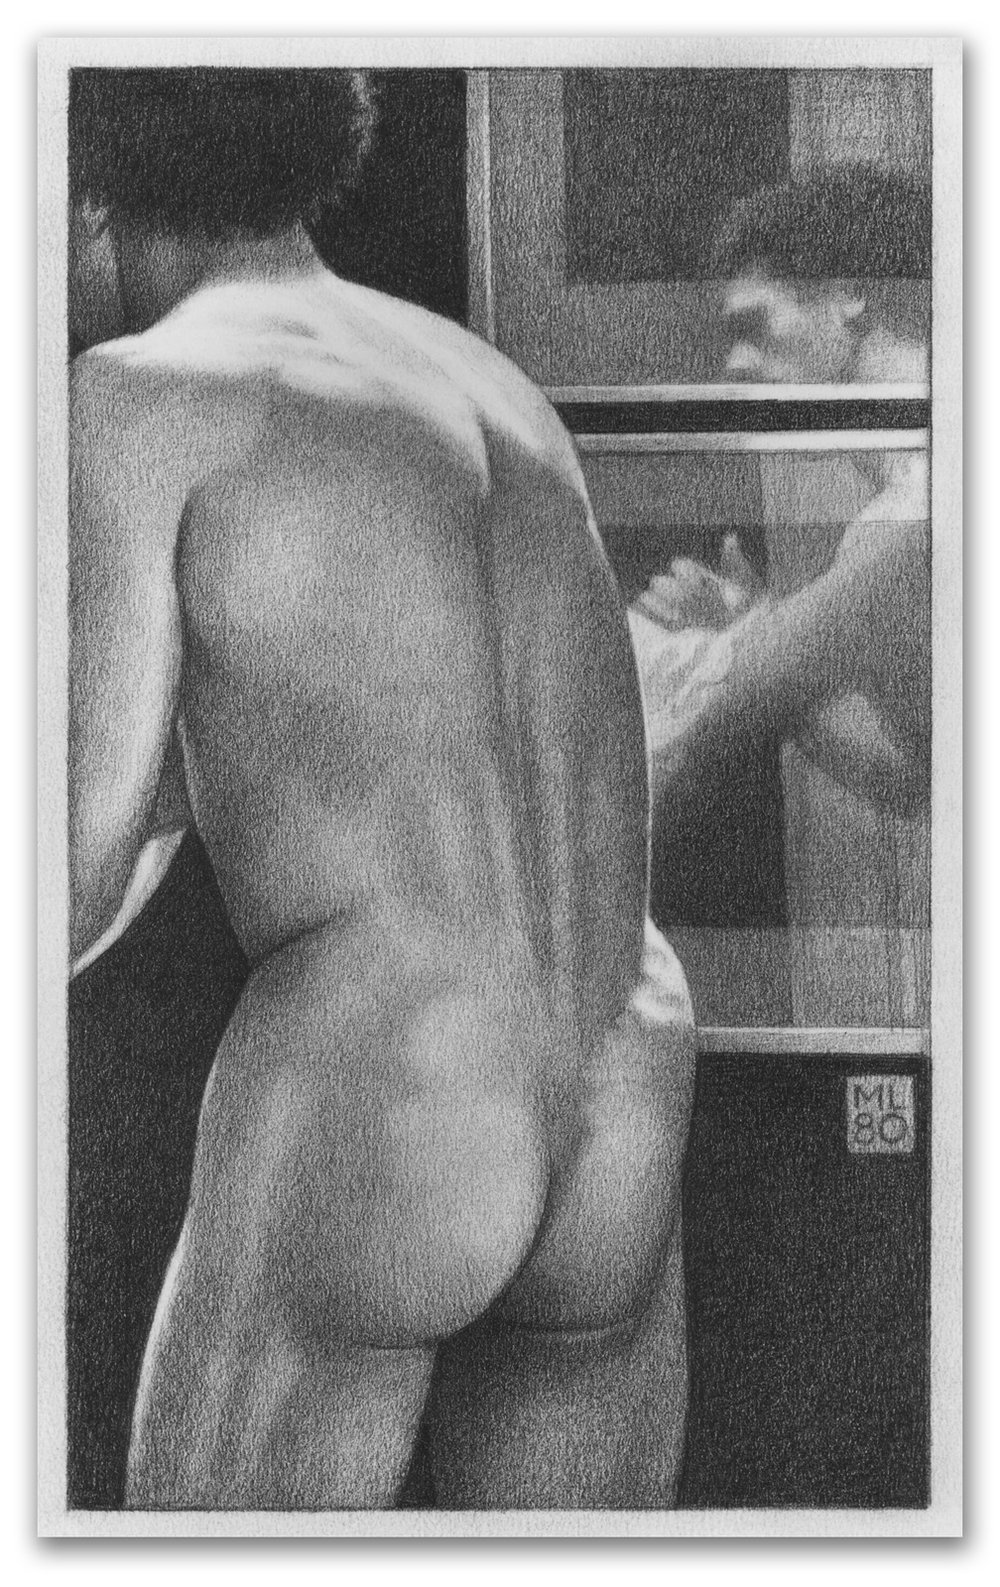 ML_068_ 21 Man's Back and Reflect.jpg